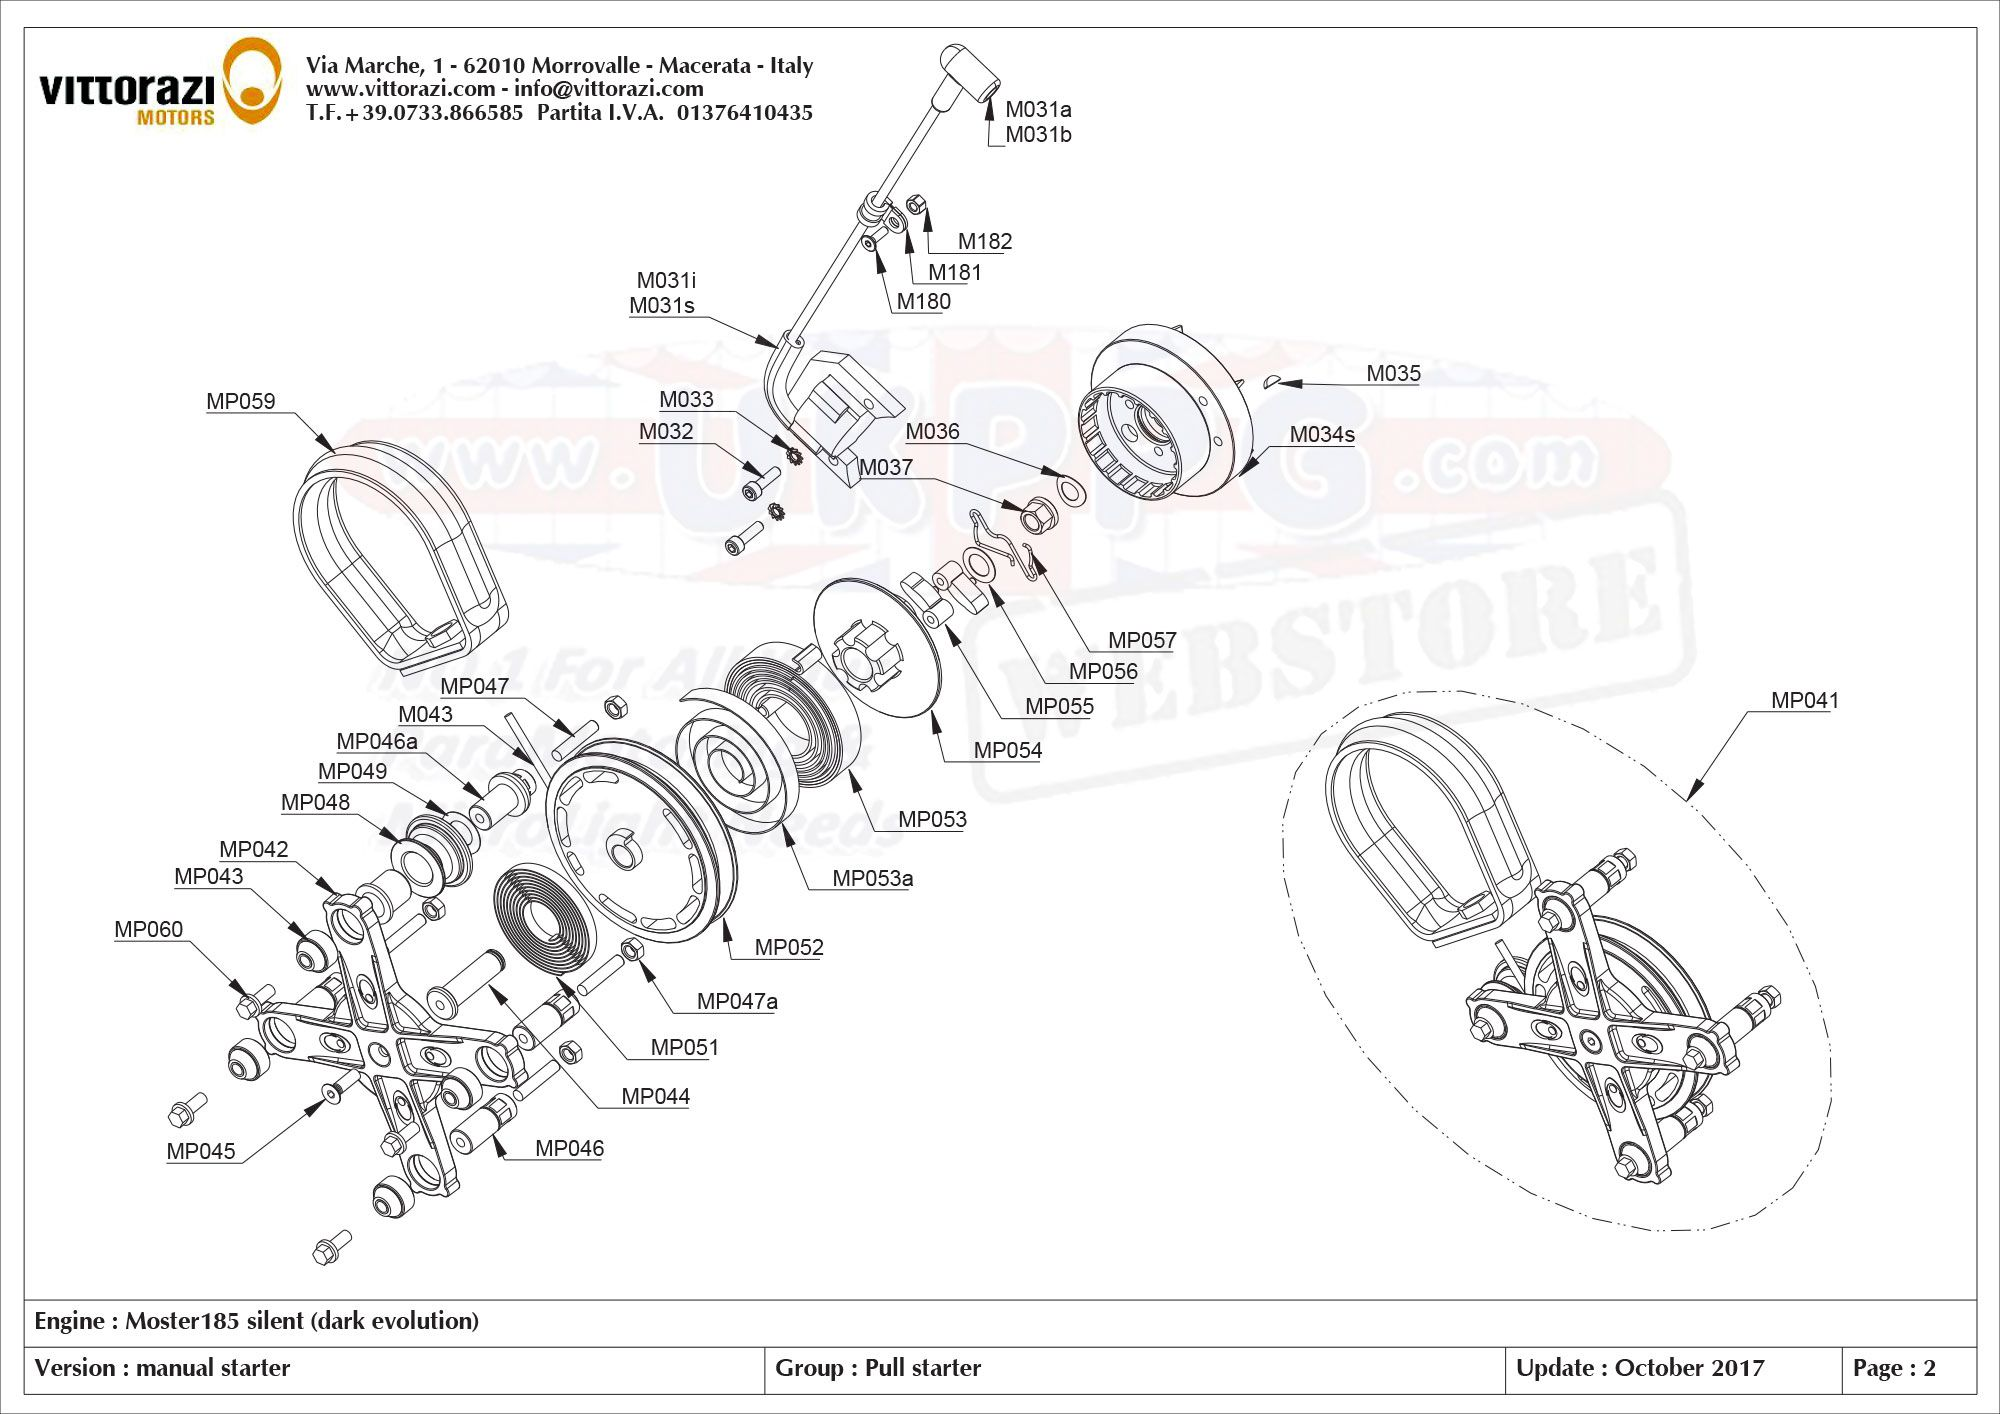 Moster 185 Silent Parts